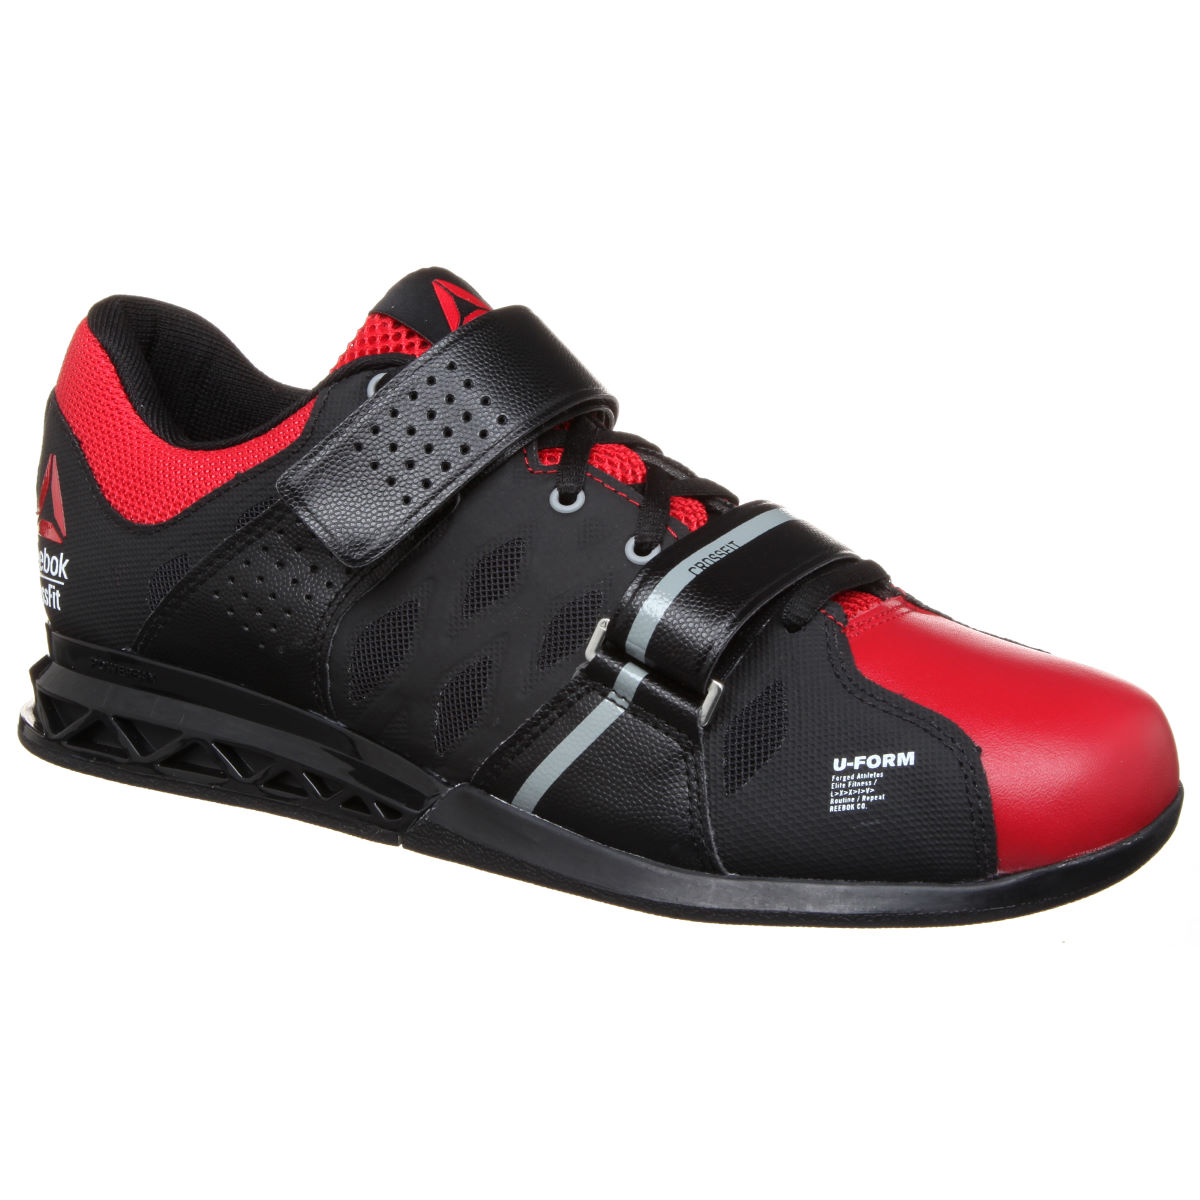 Chaussures Reebok CrossFit Lifter Plus 2.0 (AH16) - 10 UK Black/Red/Grey Chaussures d'entraînement